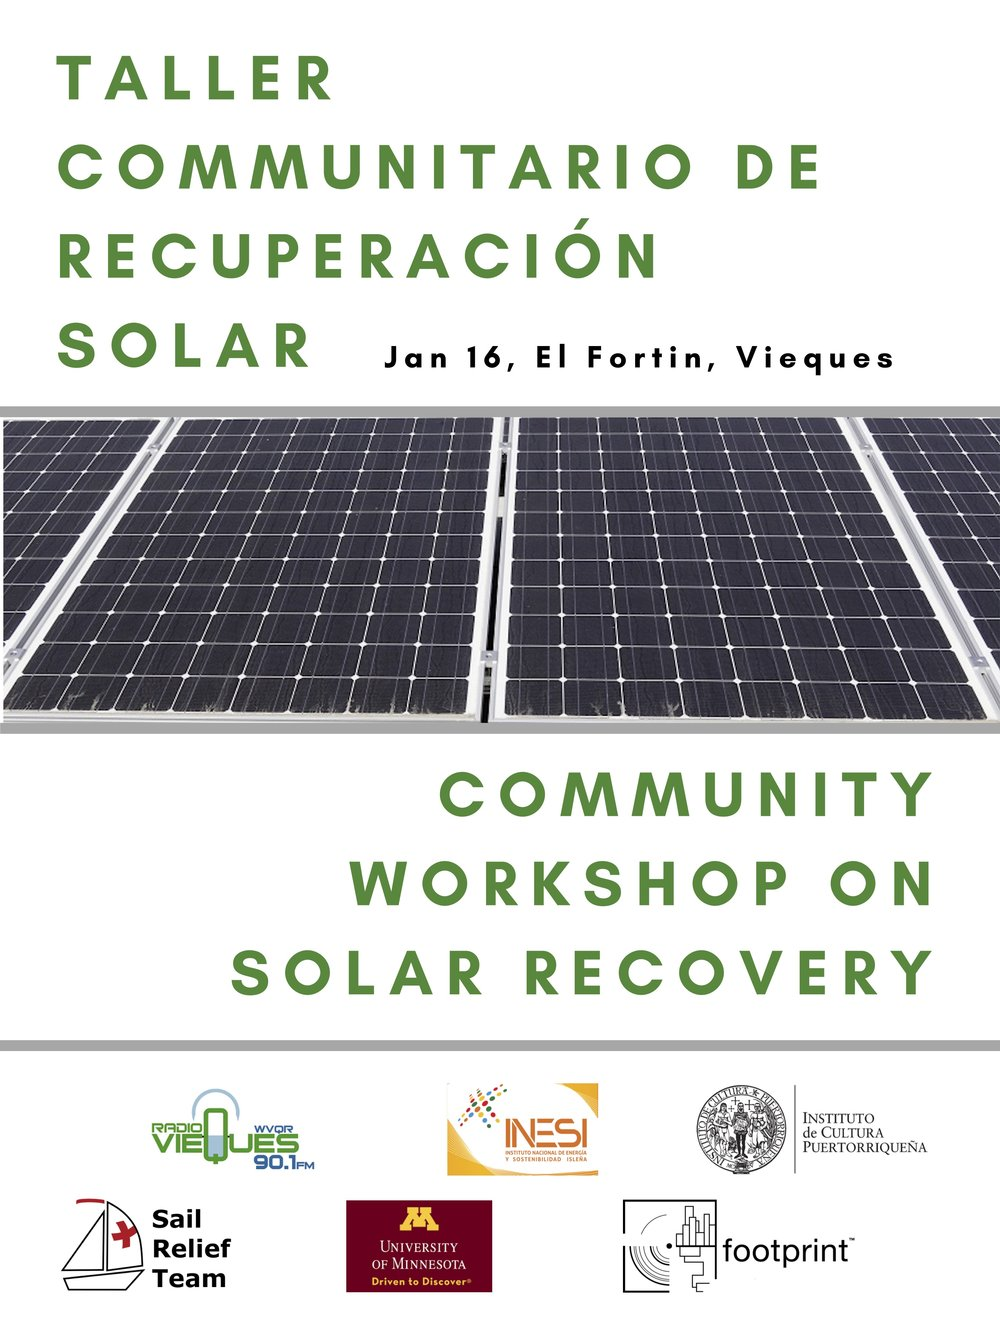 Vieques Solar Recovery Workshop Flyer1.jpg